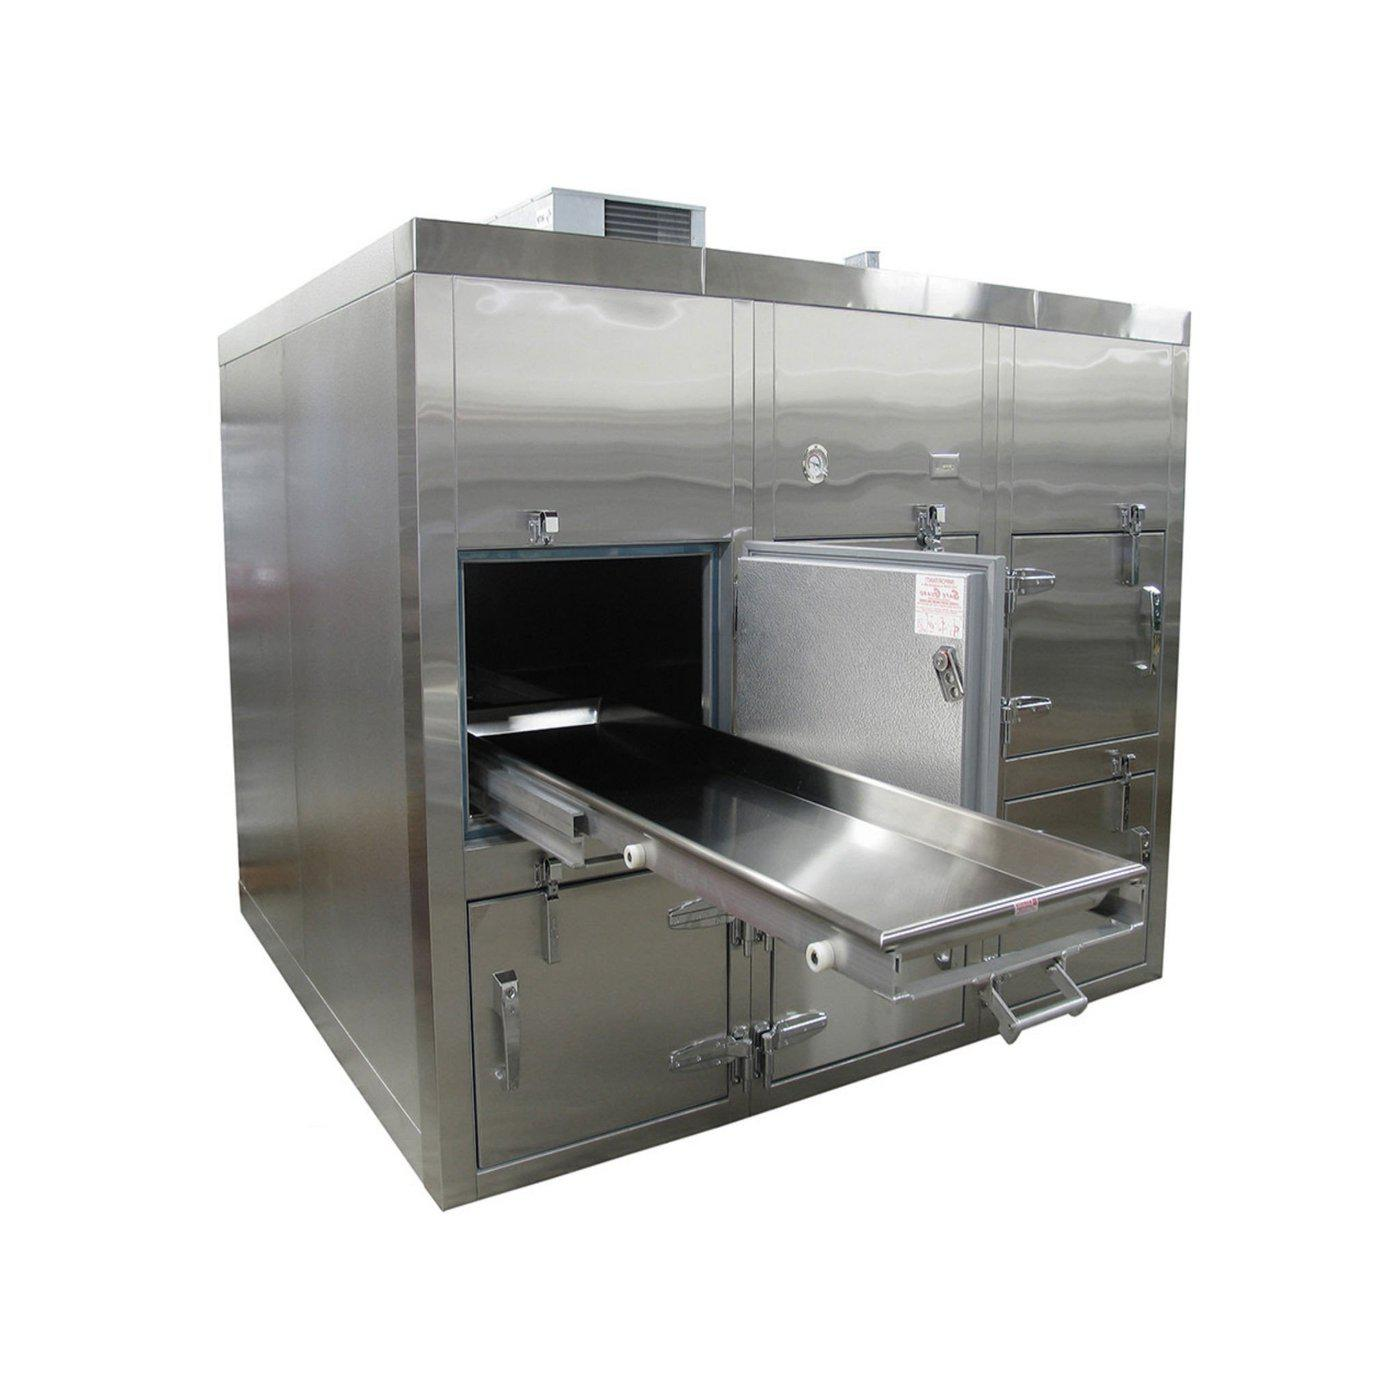 Six Body Horizontal Refrigerator-Refrigeration-Mortech Manufacturing Company Inc. Quality Stainless Steel Autopsy, Morgue, Funeral Home, Necropsy, Veterinary / Anatomy, Dissection Equipment and Accessories